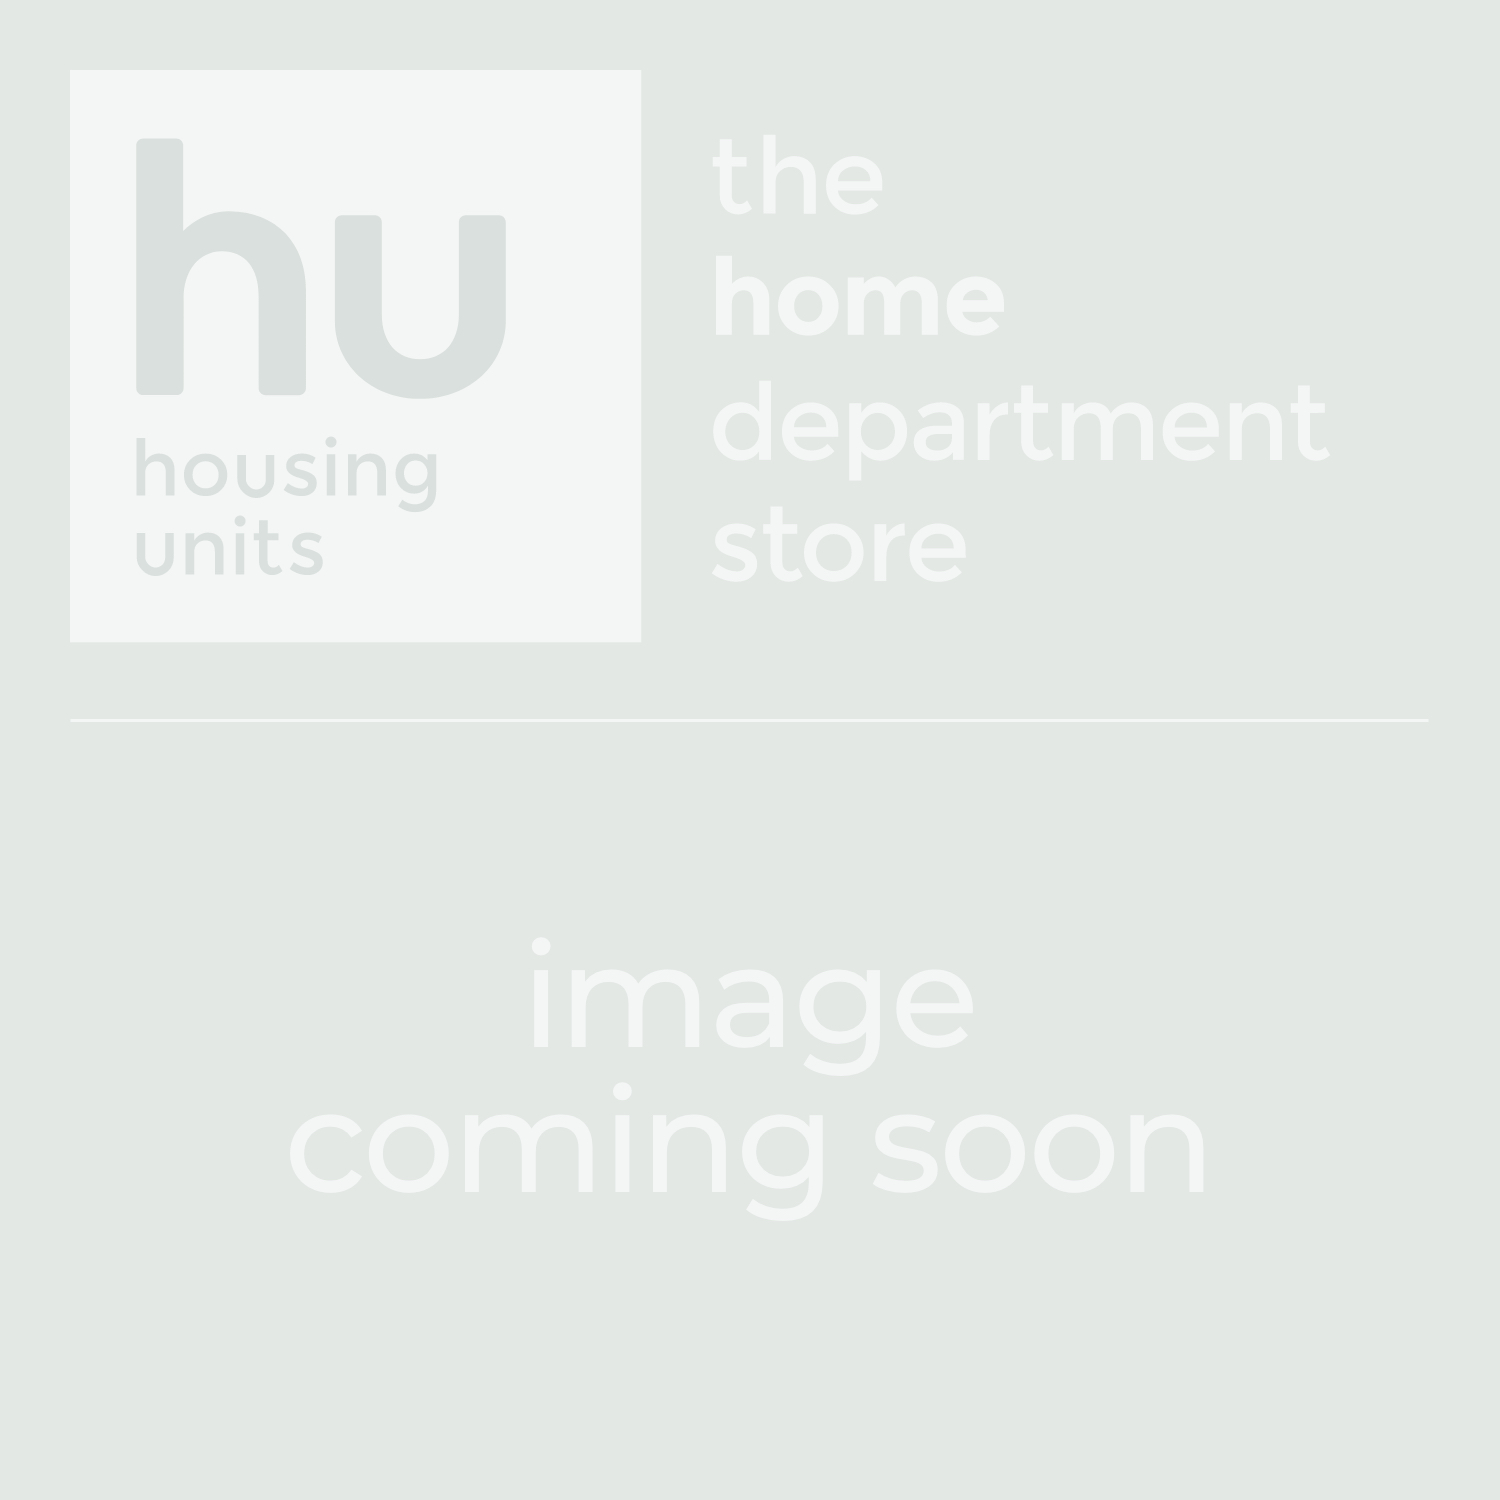 Celsi Ultiflame VR Adour Aleesia Illumia White Electric Fire Suite - Lifestyle | Housing Units